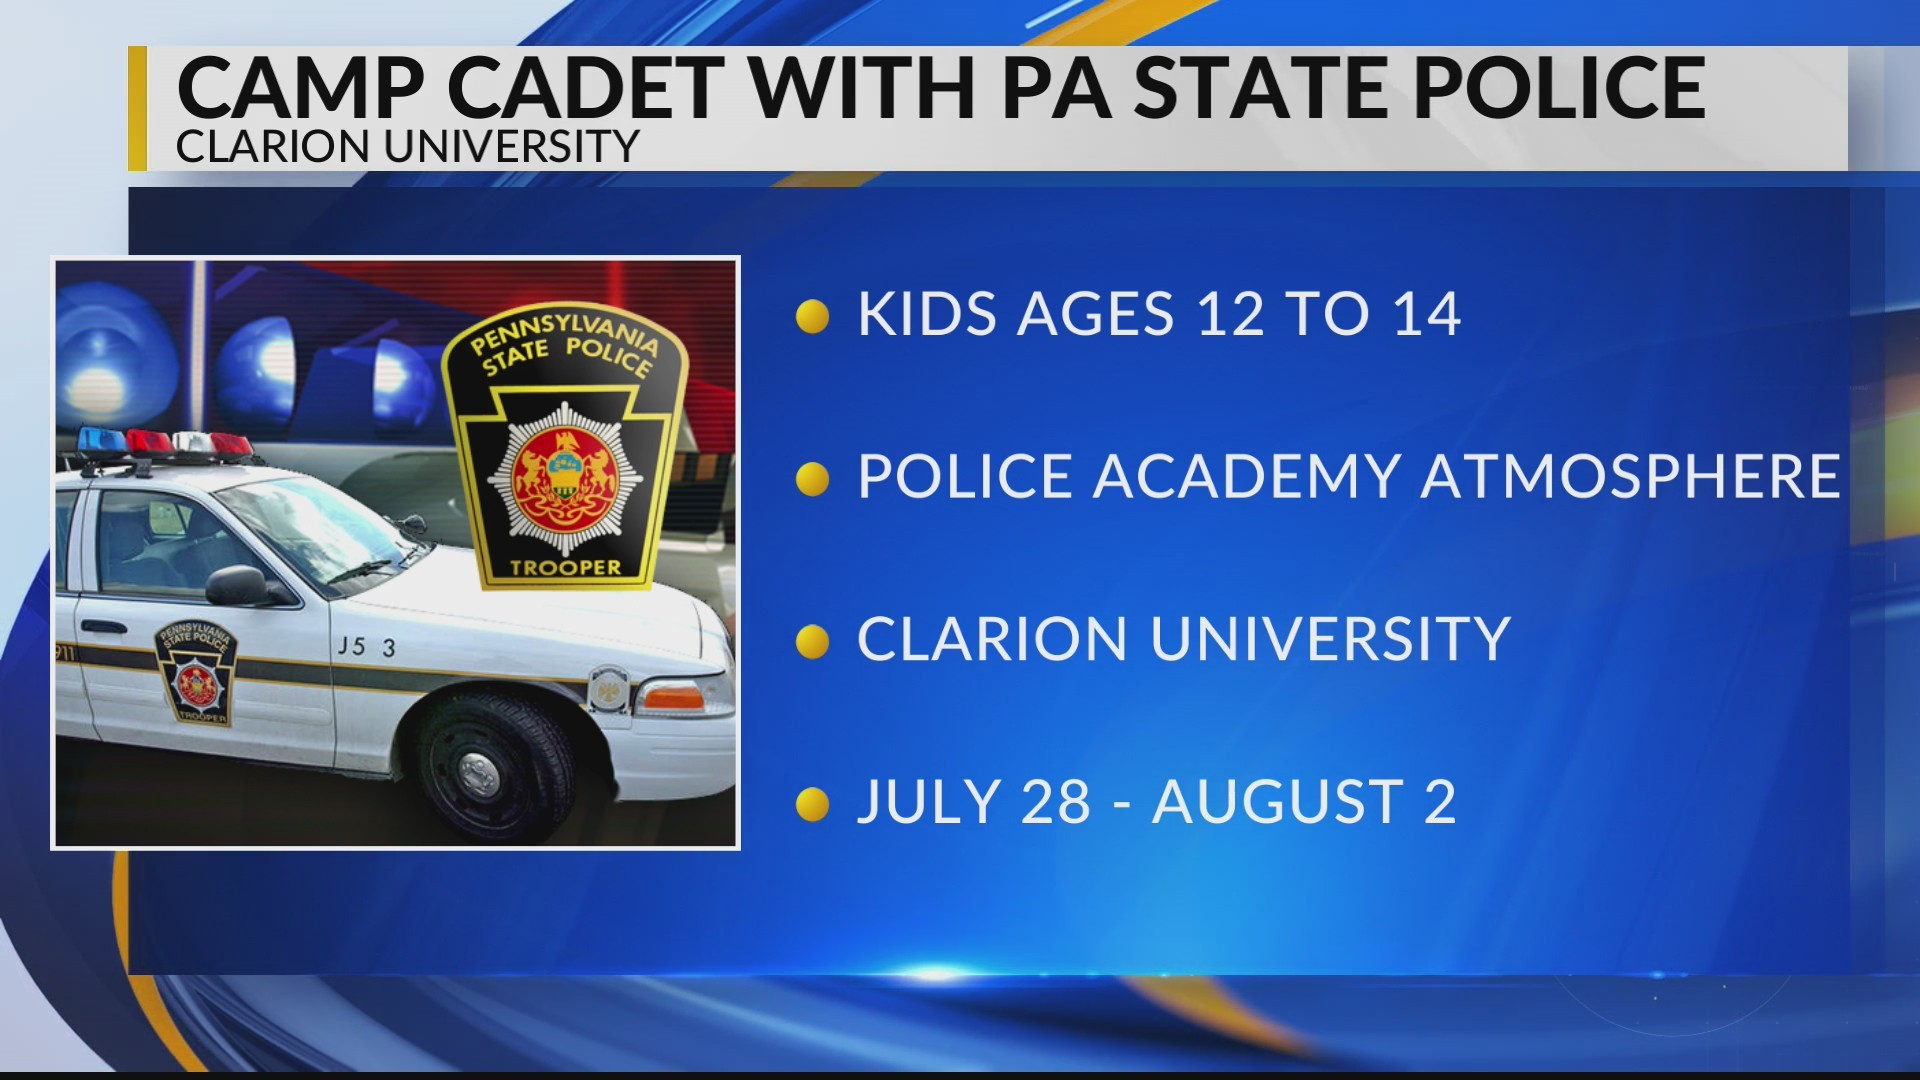 Kids can attend Camp Cadet with State Police